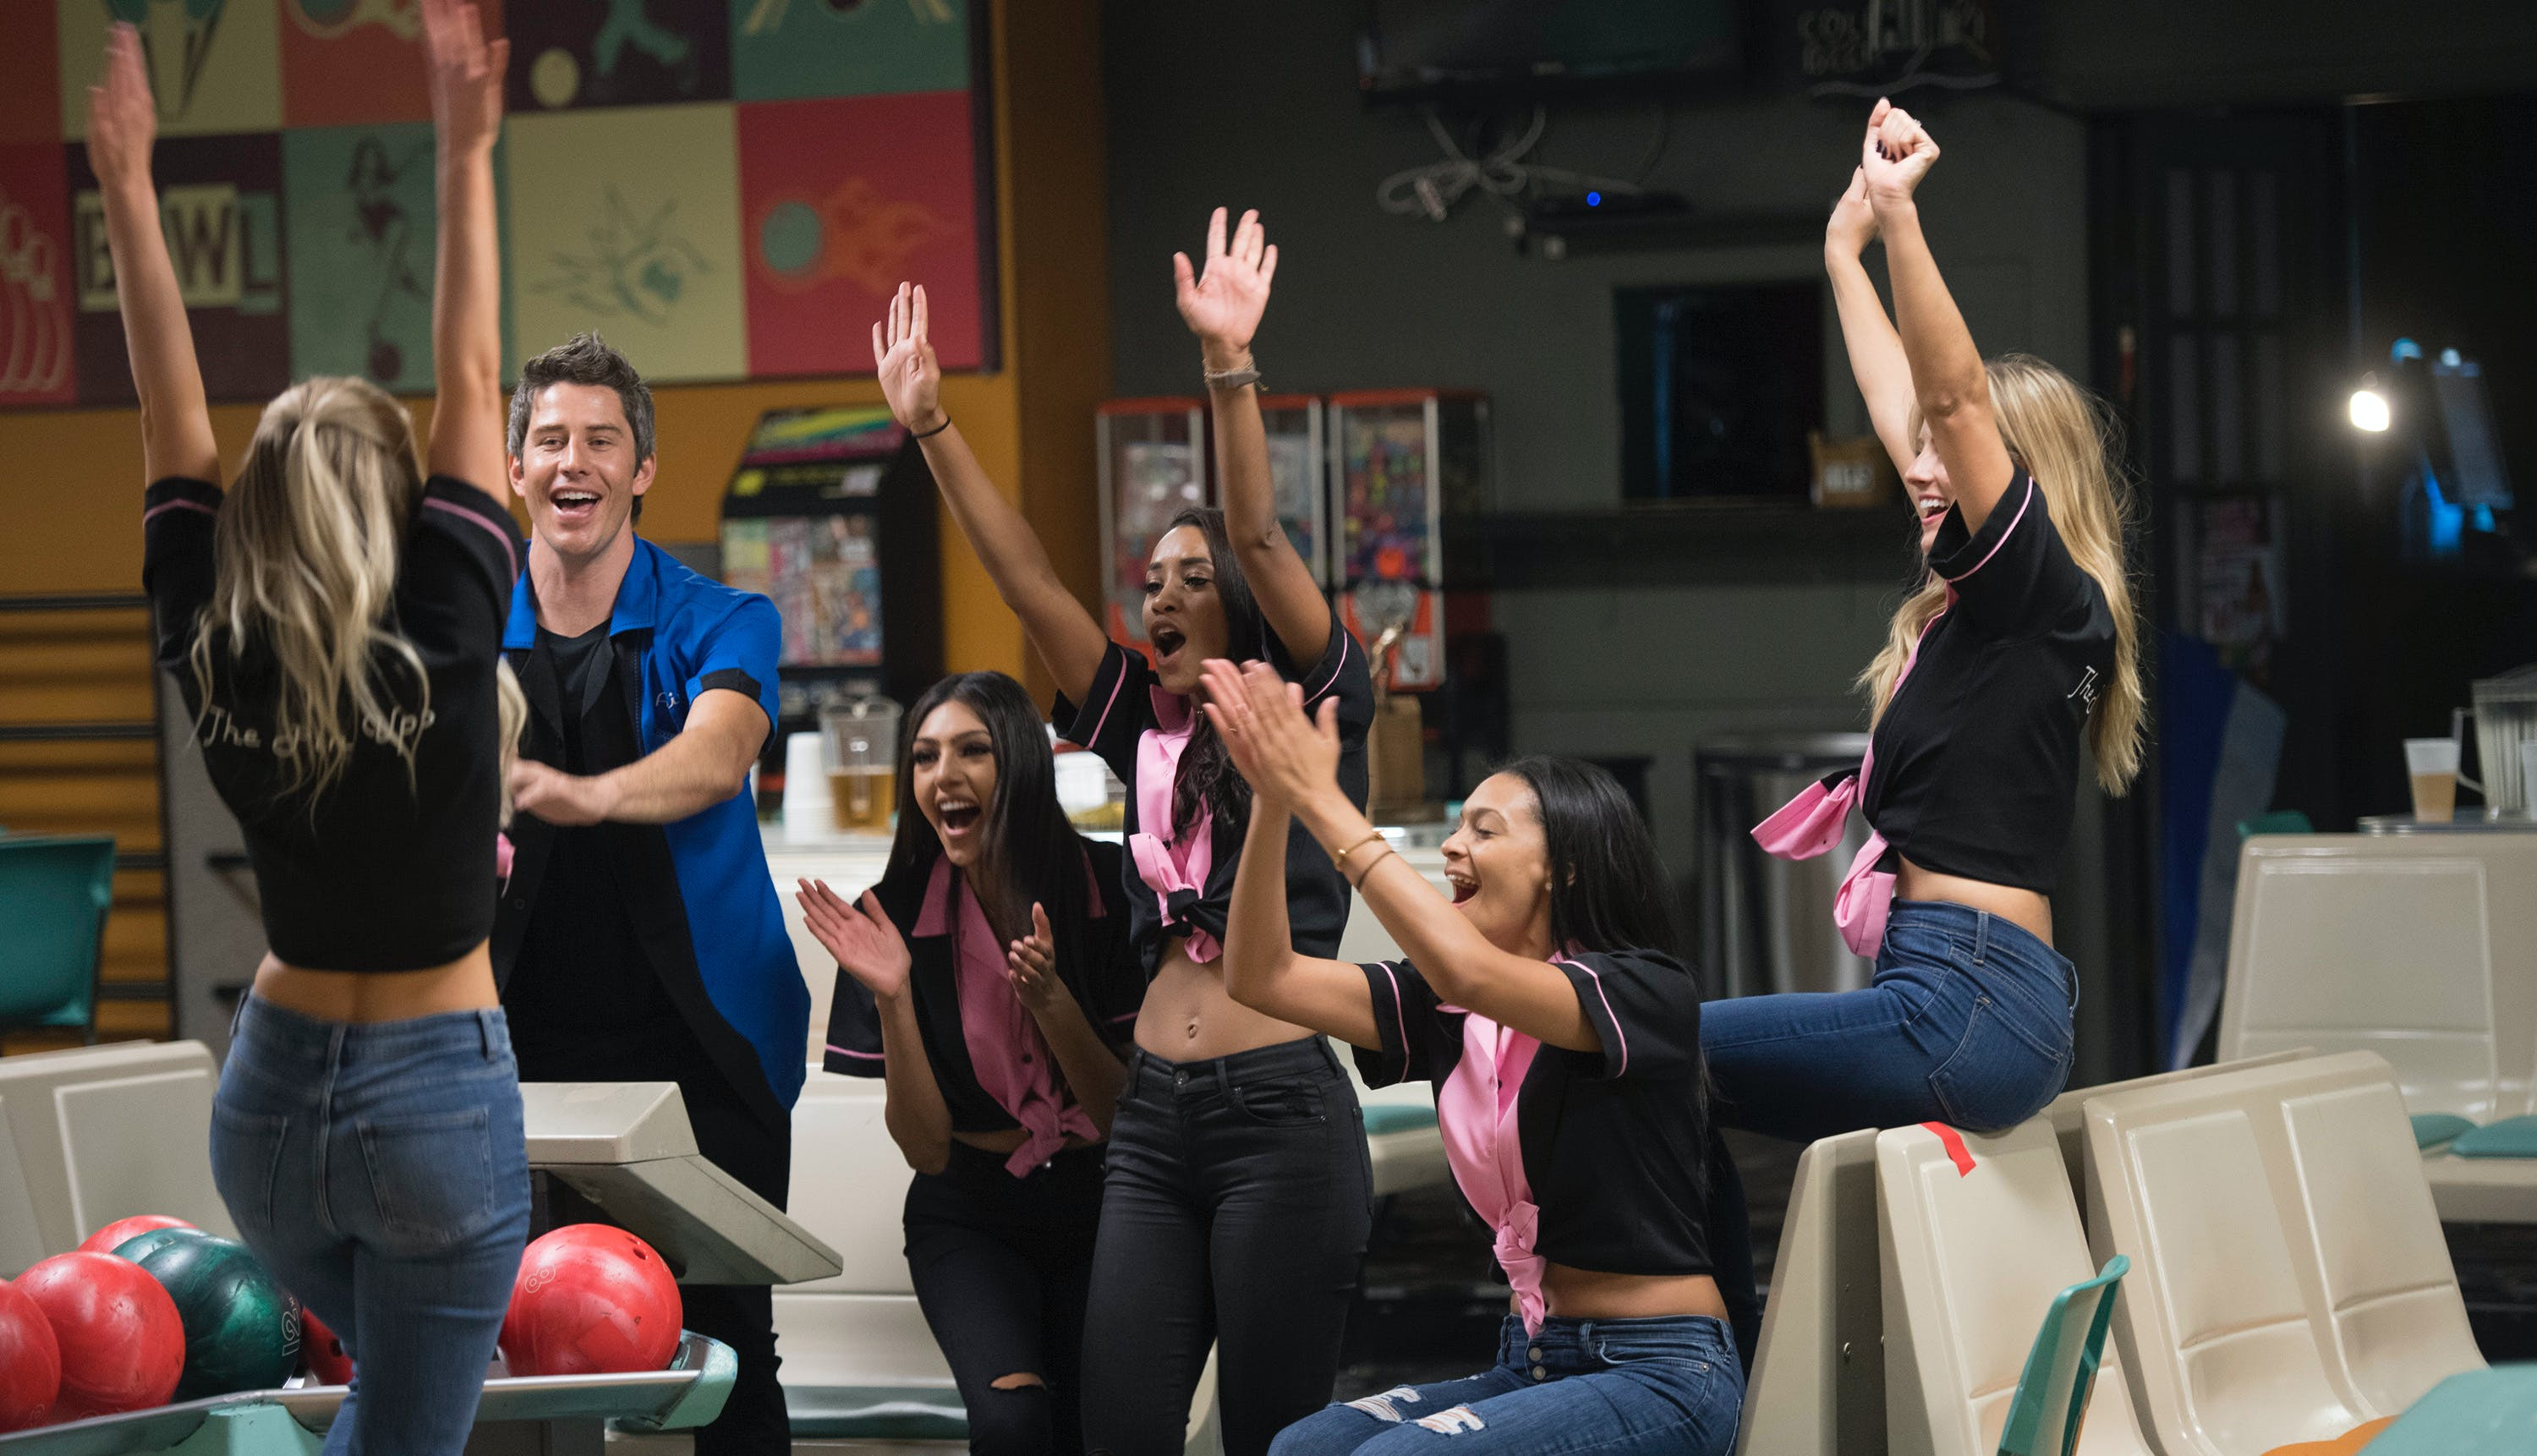 The Bachelor season 22 episode 5 bowling